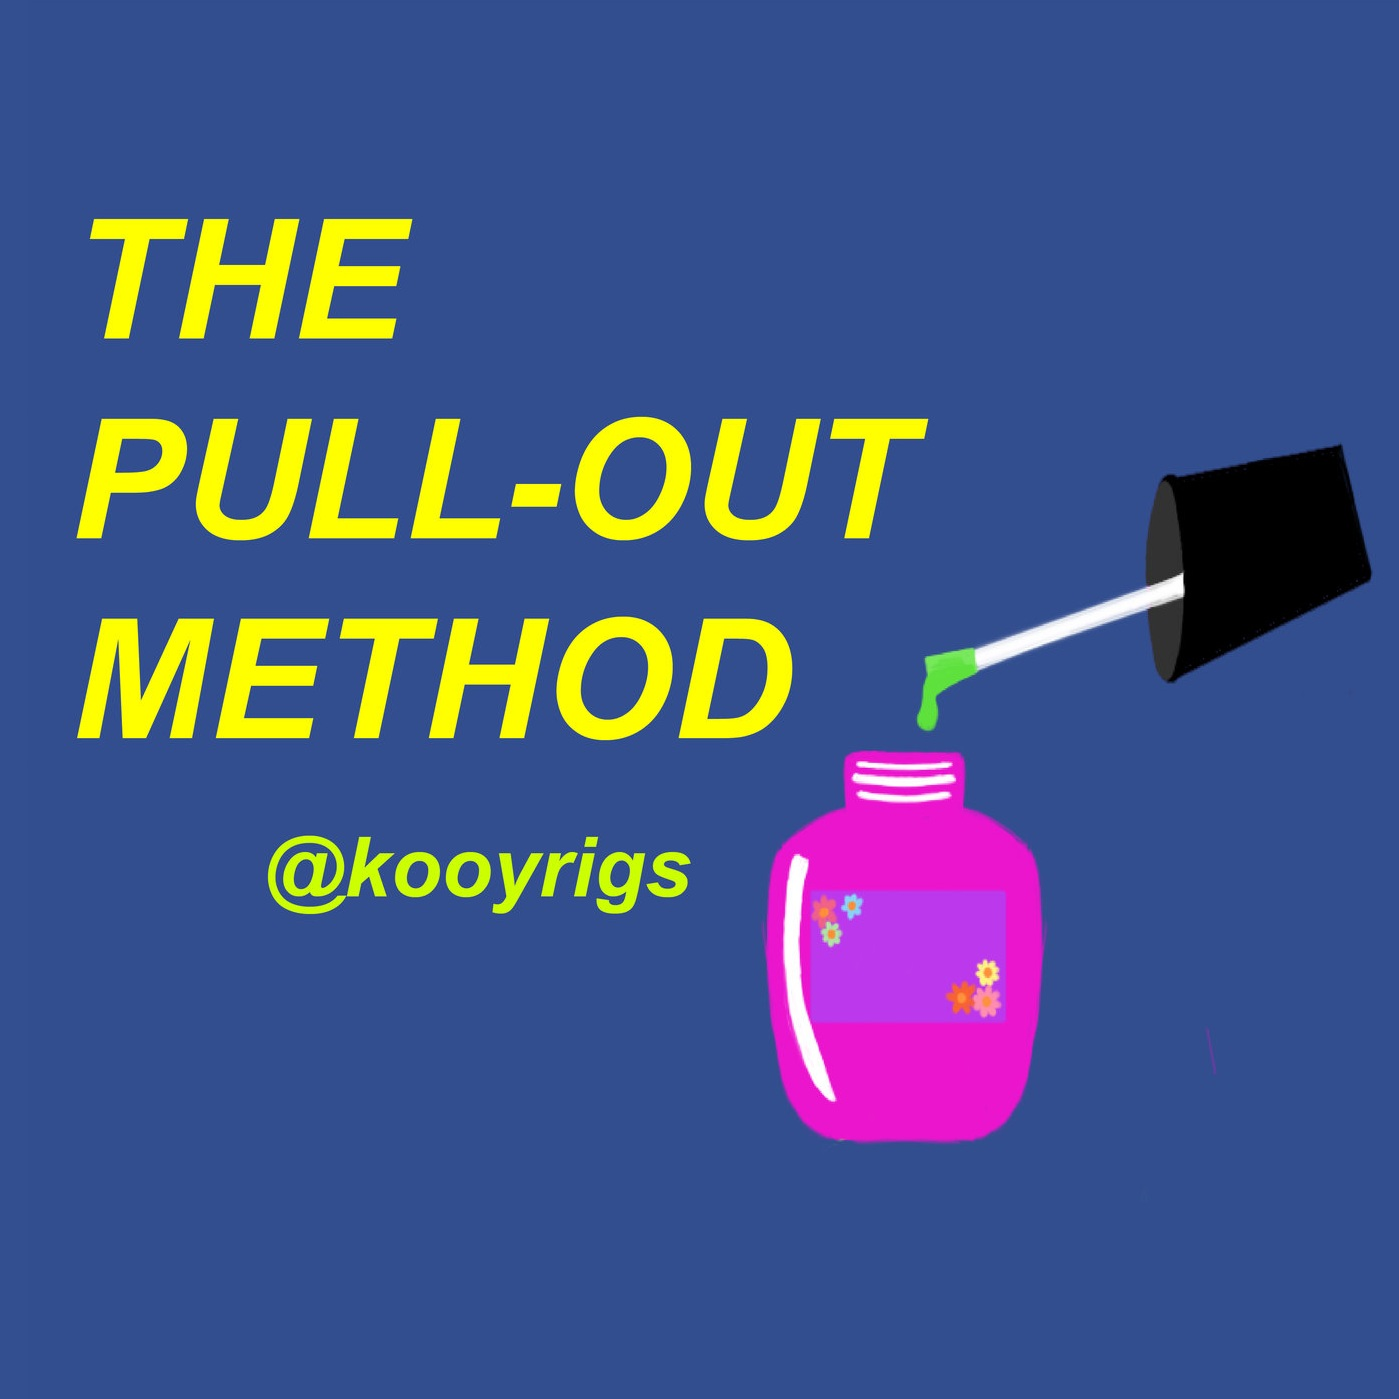 the+pull+out+graphic+kooyrigs.jpg